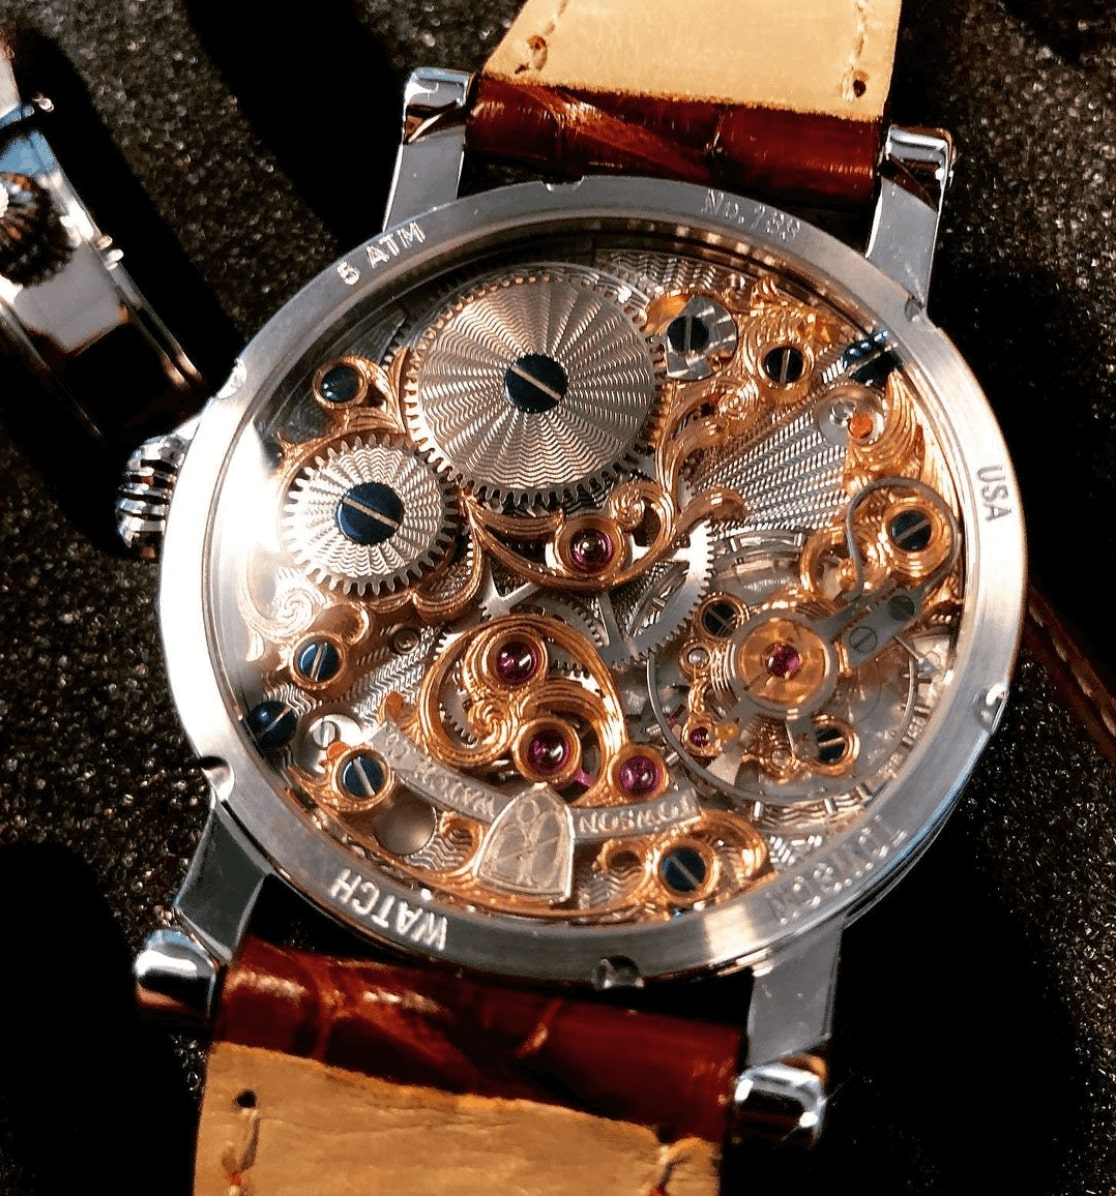 Back side of a Towson watch showing the mechanical parts.